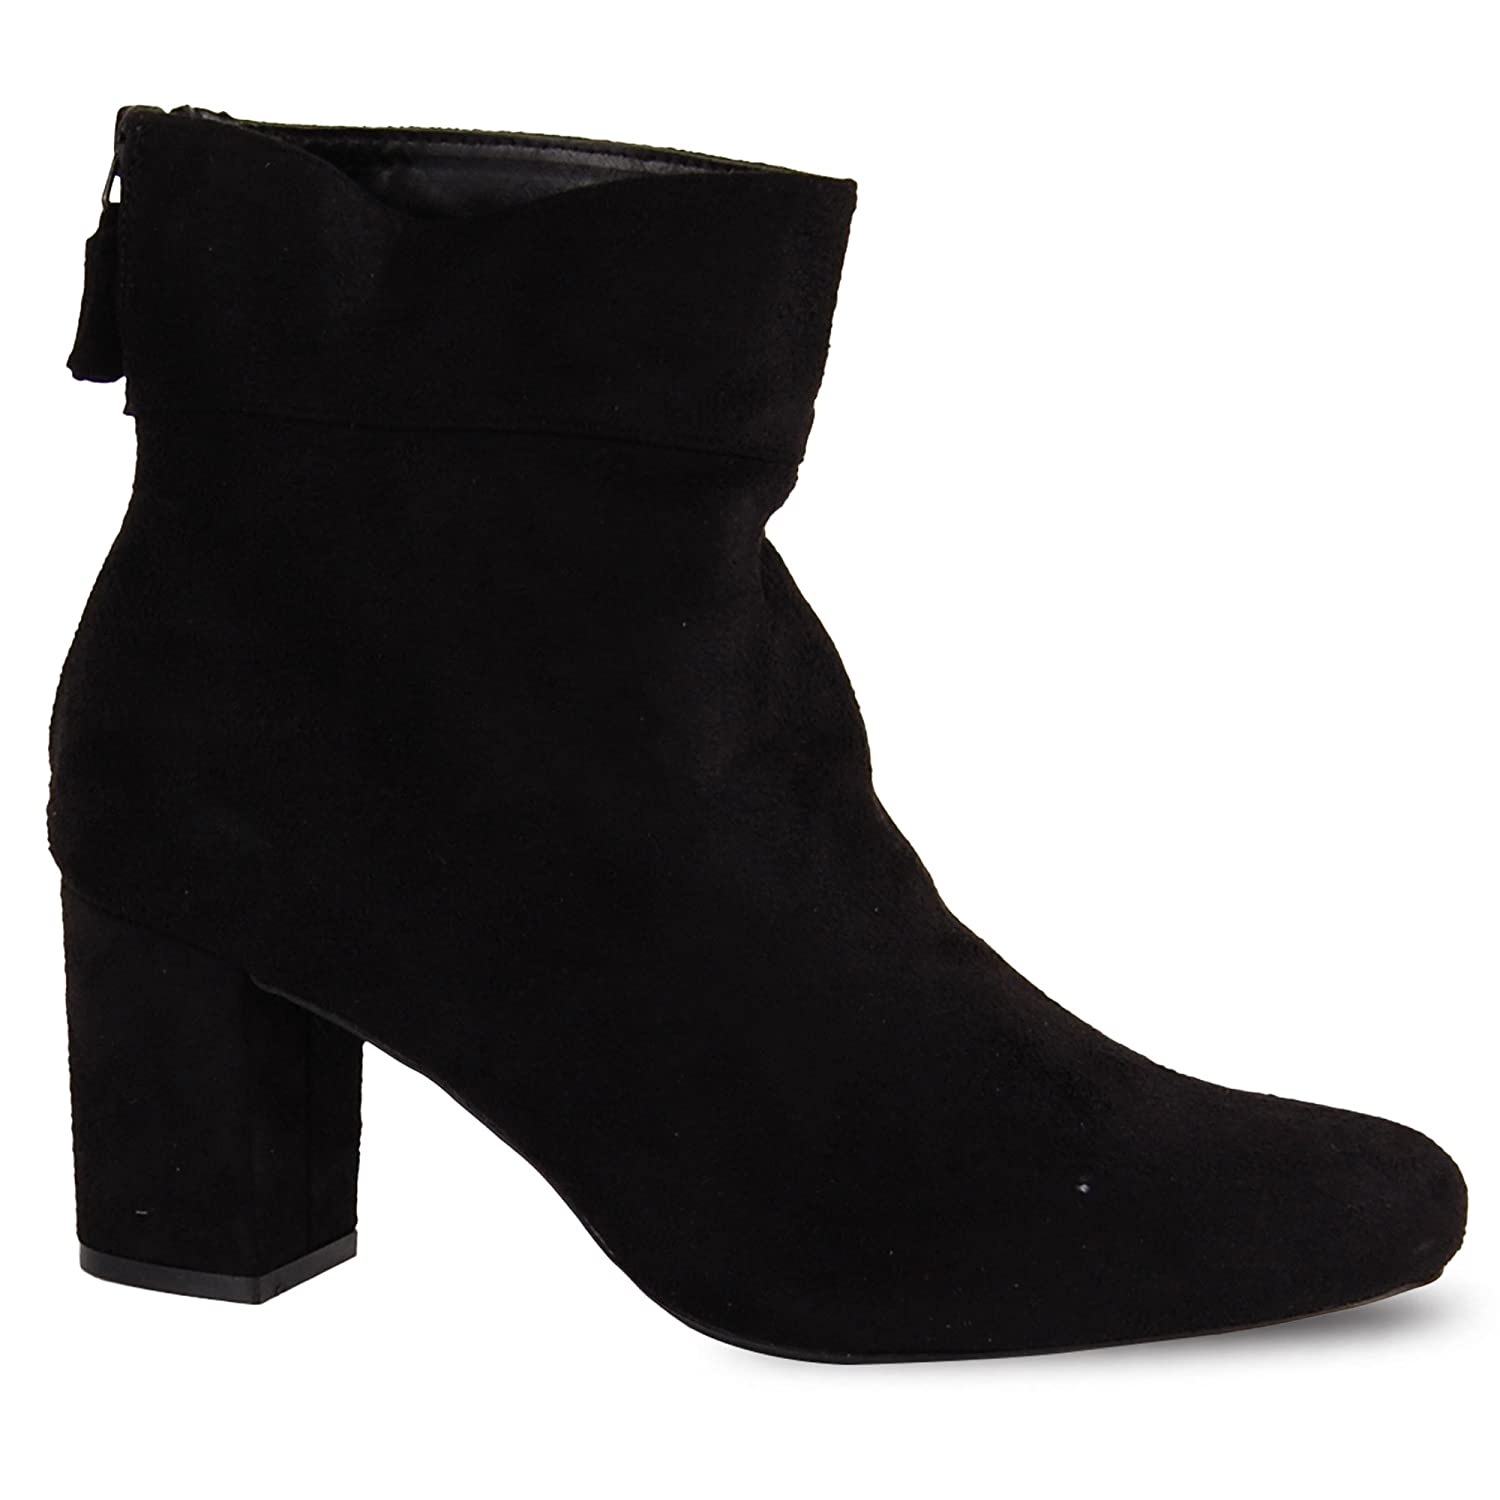 93066d2d9ea81 Womens Ladies Zip Up Sock Fit Block Heel Faux Suede Ankle Boots Smart  Casual Mid High Heel Shoe Boot  Amazon.co.uk  Shoes   Bags